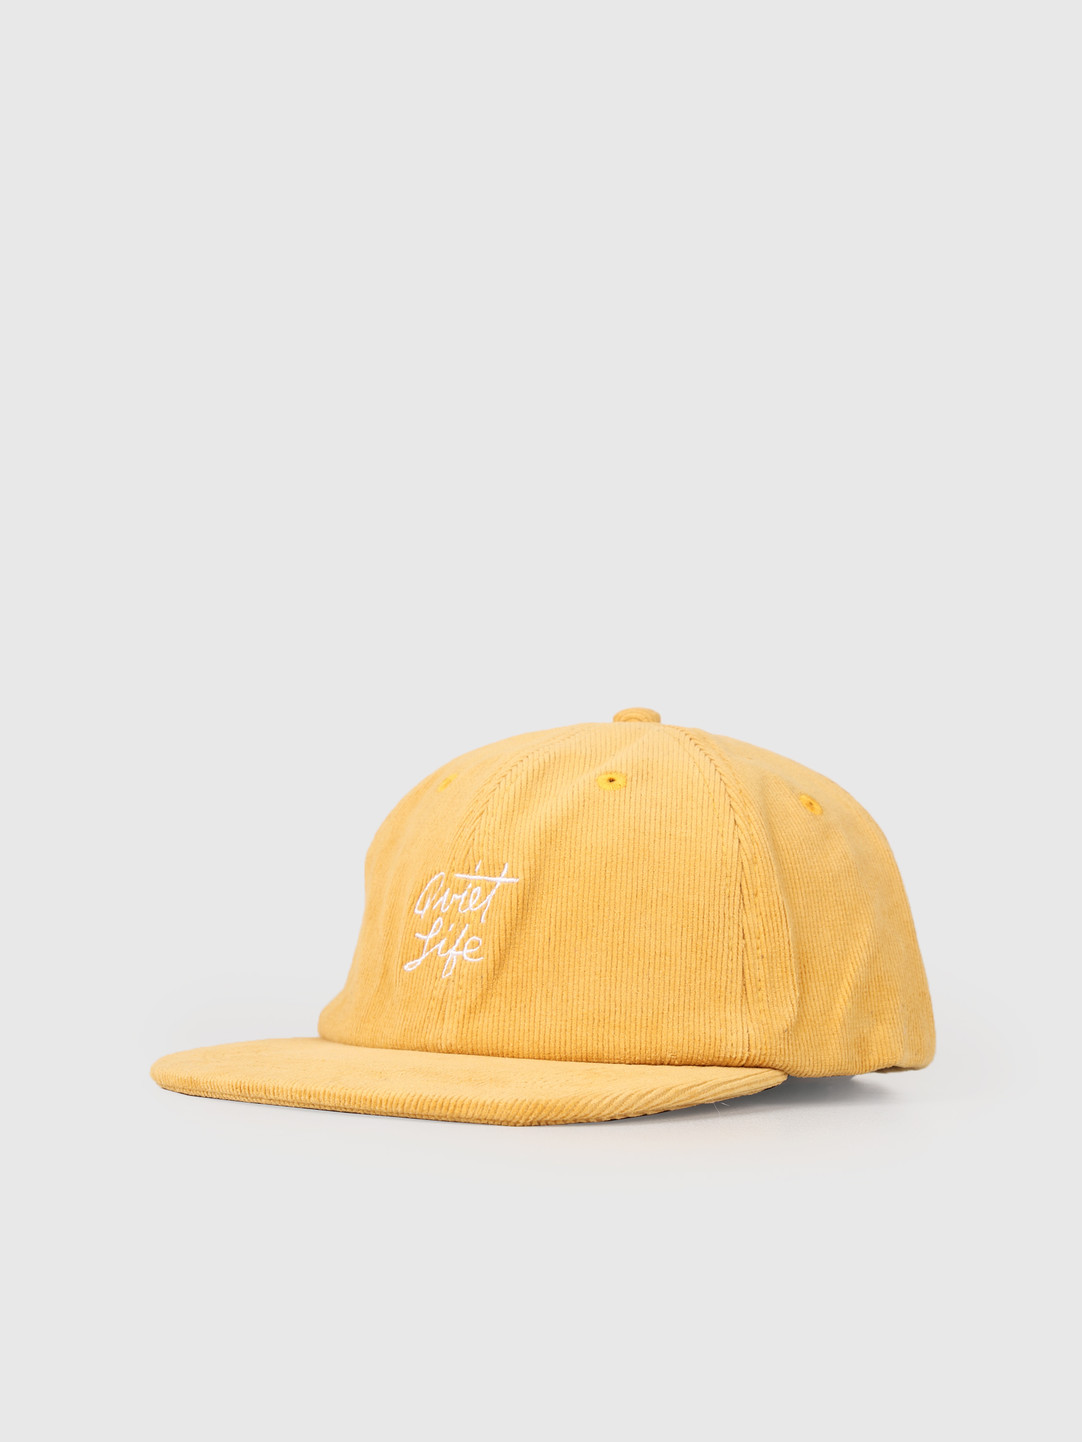 The Quiet Life The Quiet Life Beach Cord Polo Hat Gold 19SPD2-2188-GLD-OS